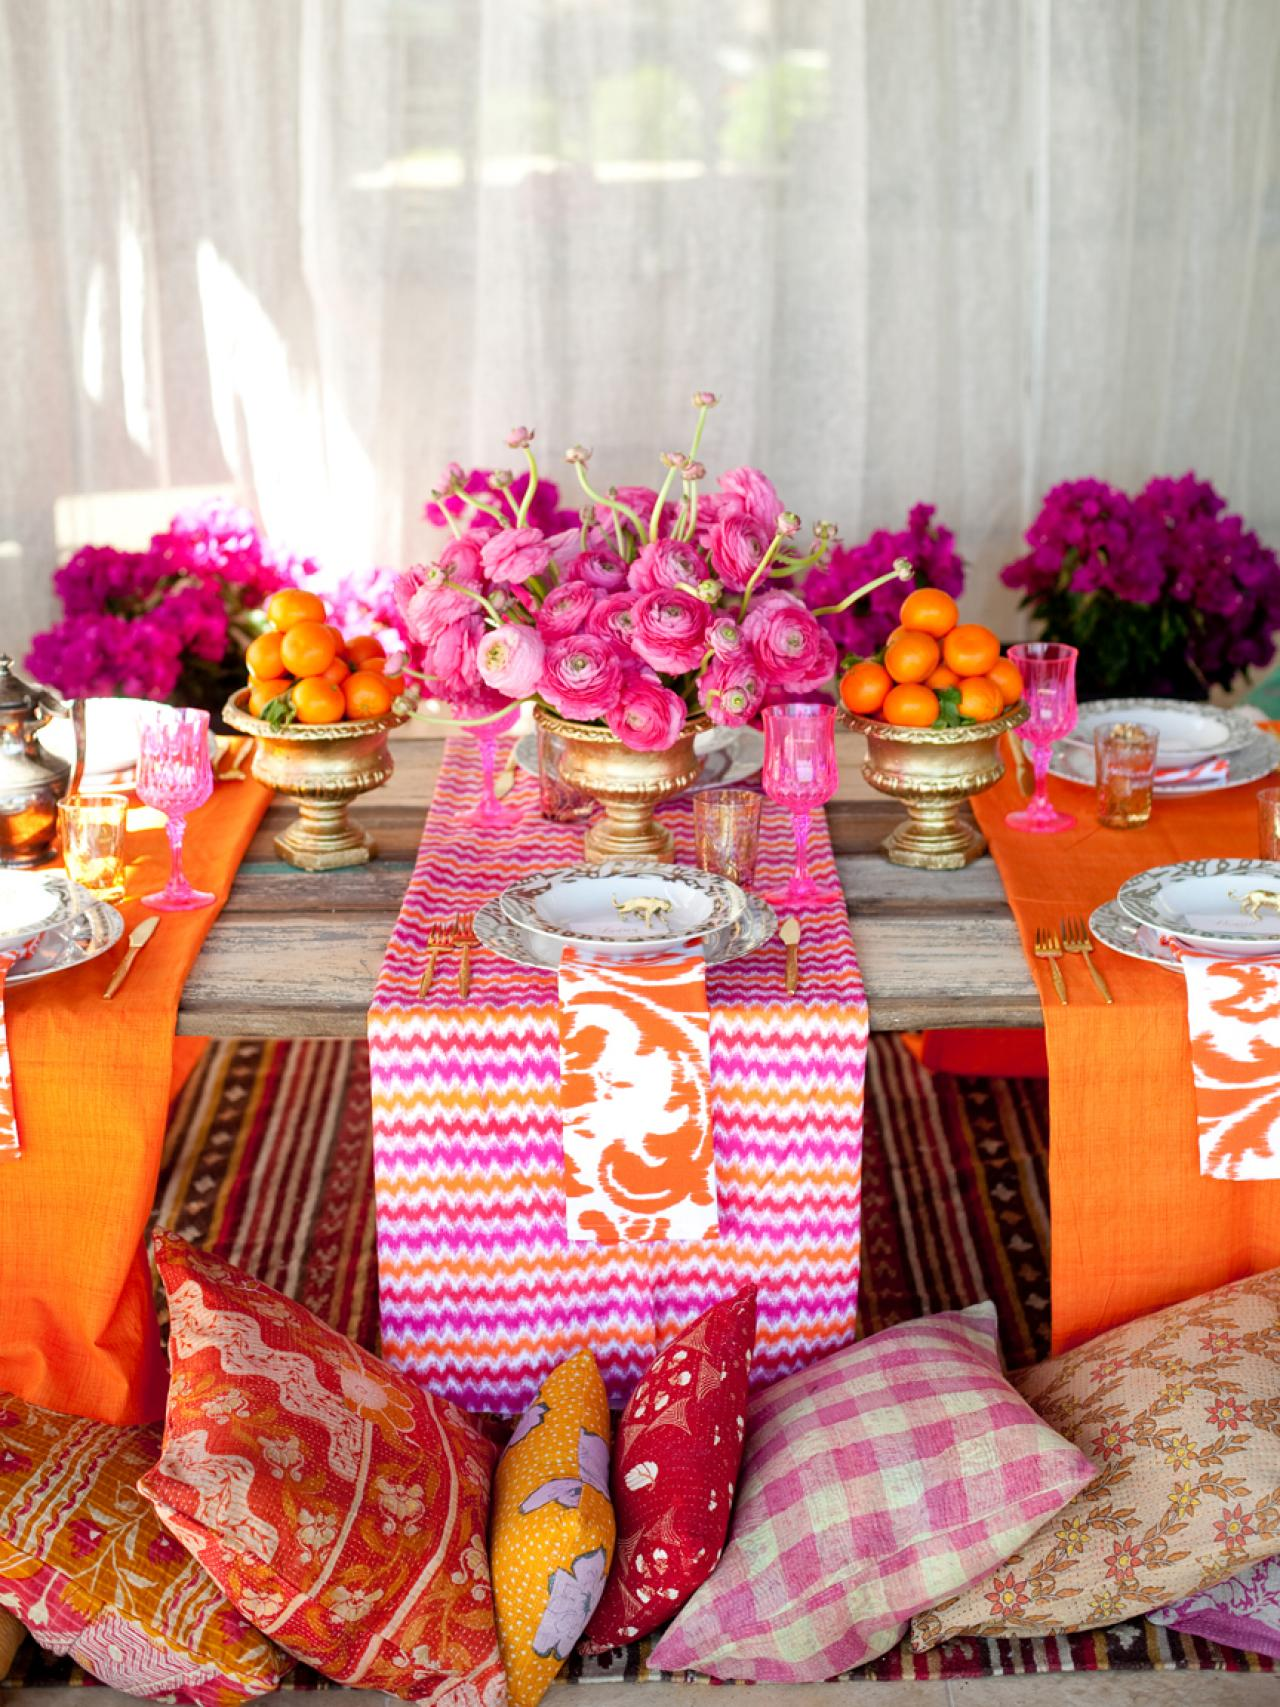 CI-She-n-He-Photography_Exotic-Wedding-pink-orange-vertical_s3x4.jpg.rend.hgtvcom.1280.1707.jpeg